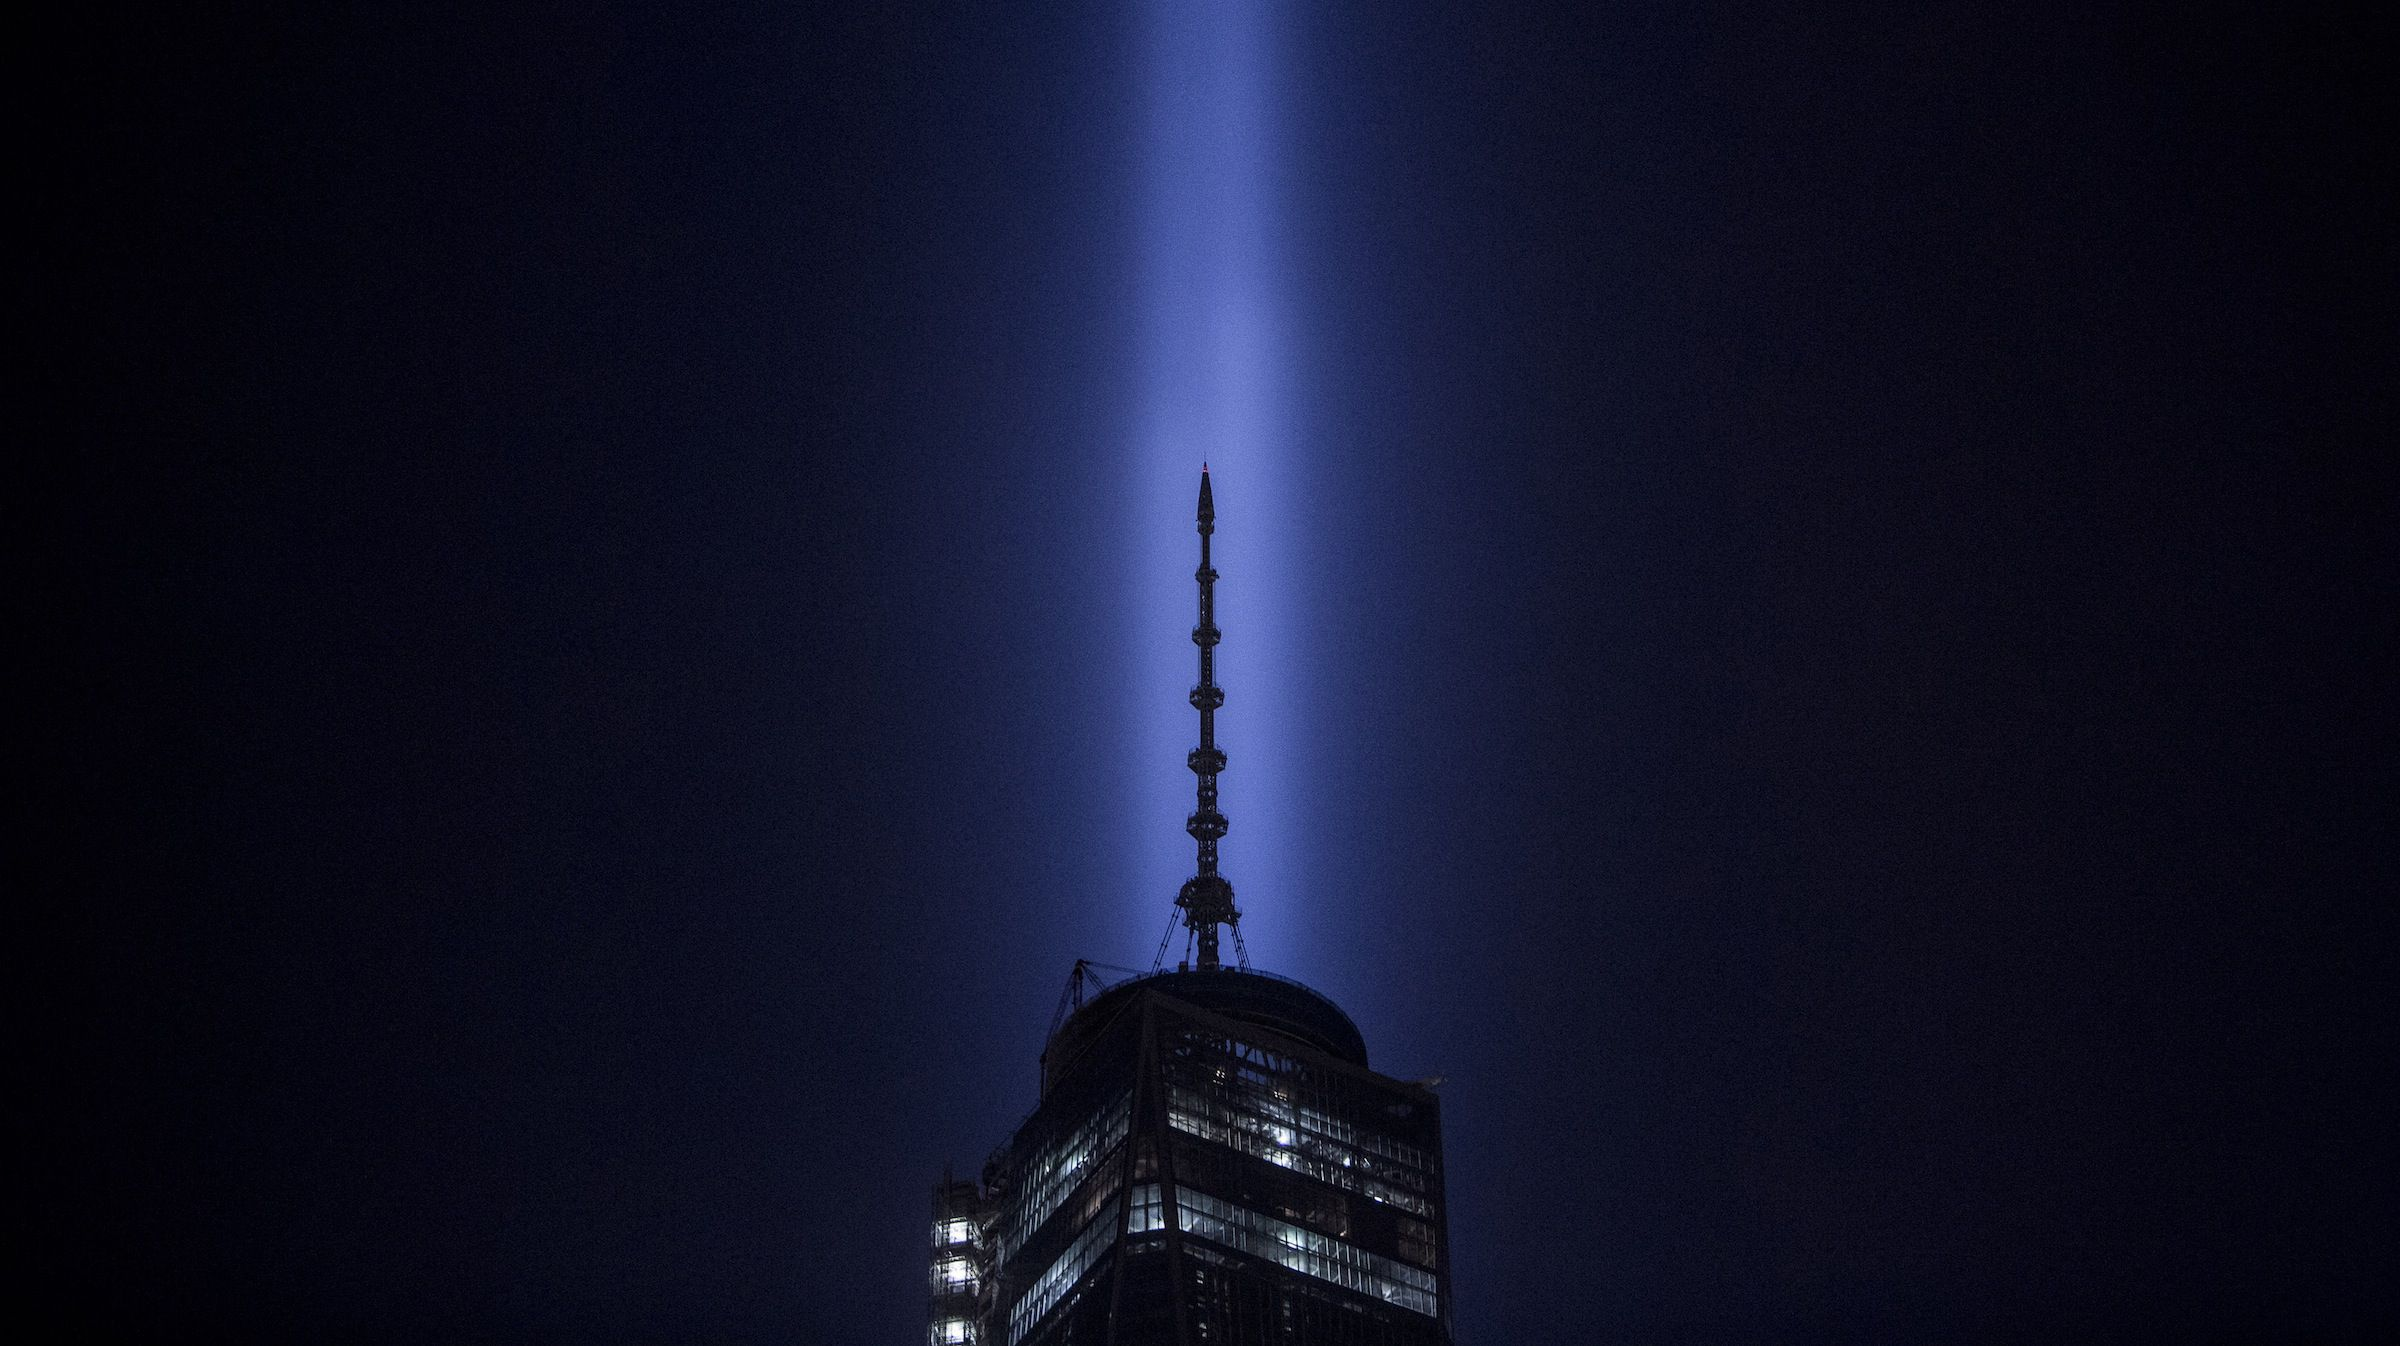 One World Trade Center and The Tribute in Lights is seen in Lower Manhattan in New York, September 11, 2013. Bagpipes, tolling bells and a reading of the names of the nearly 3,000 people who died when hijacked jetliners crashed into the World Trade Center, the Pentagon, and a Pennsylvania field marked the 12th anniversary of the September 11 attacks in 2001.  REUTERS/Gary He (UNITED STATES - Tags: SOCIETY ANNIVERSARY DISASTER) - RTX13I7J